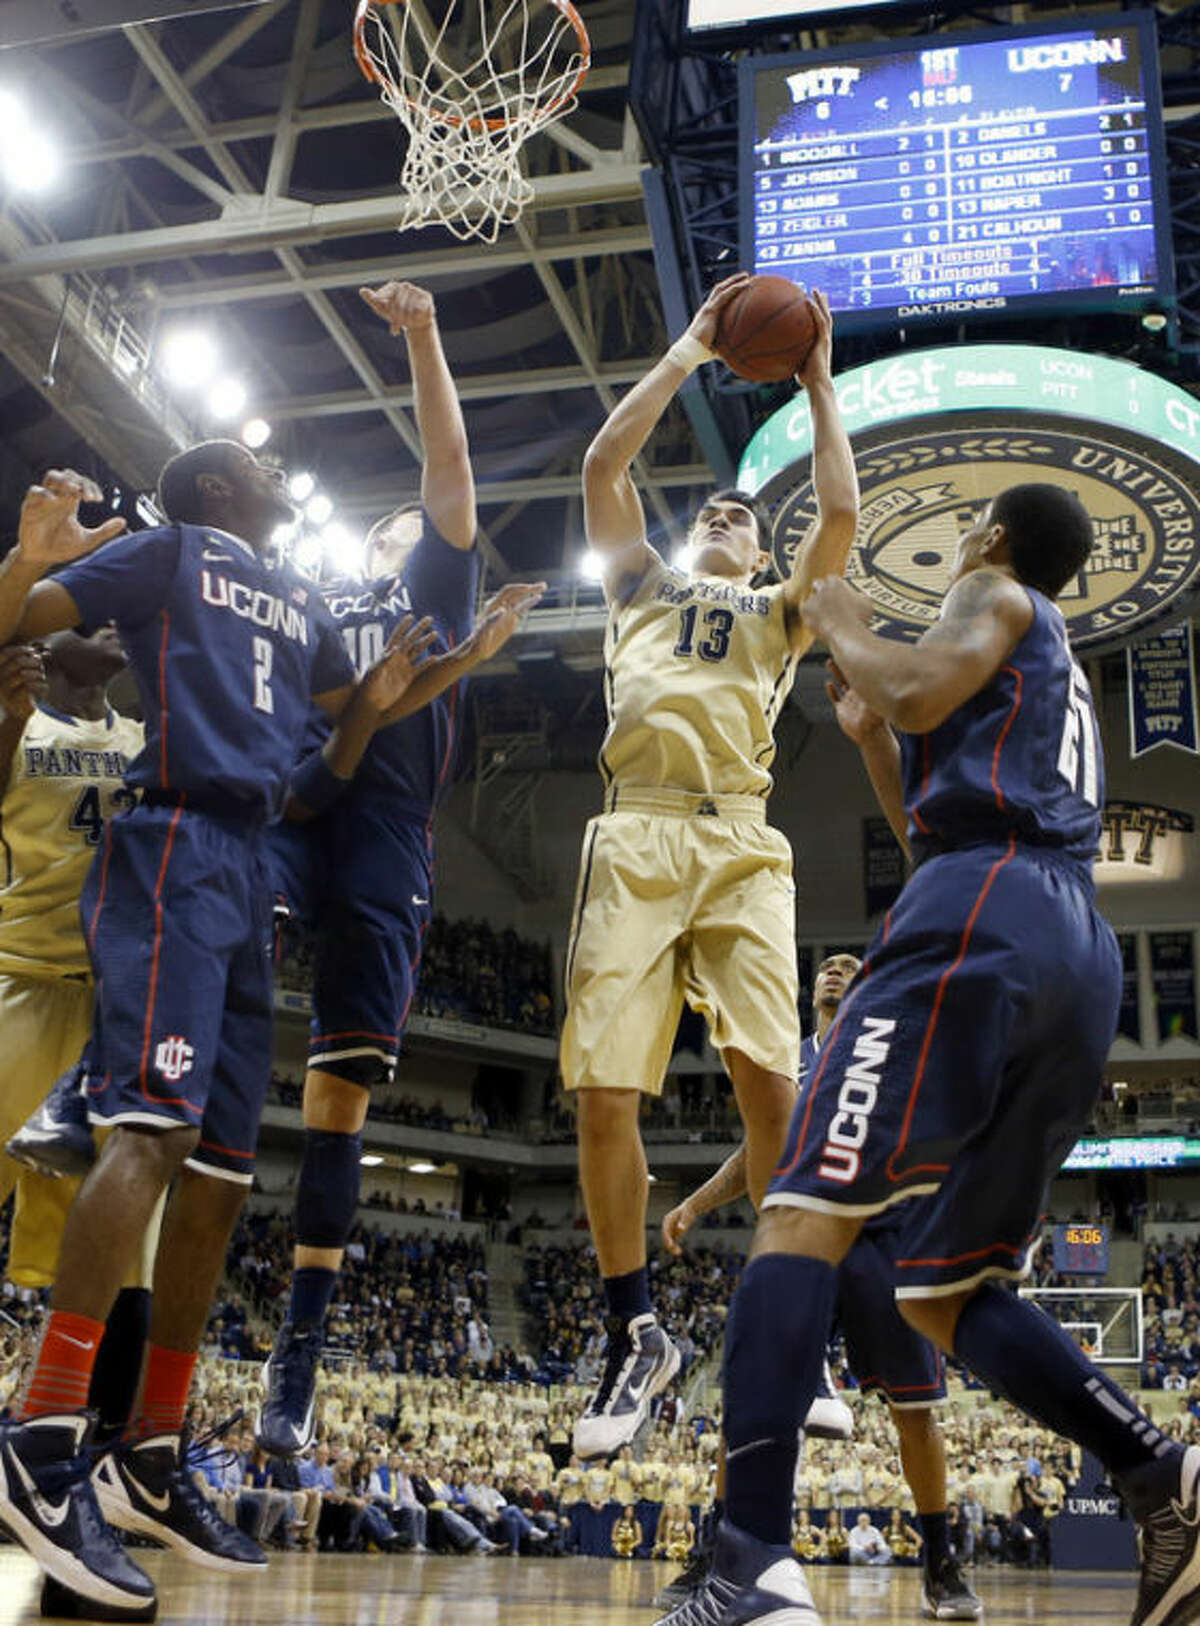 Pittsburgh's Steven Adams (13) goes up for a shot between Connecticut's DeAndre Daniels (2) and Omar Calhoun (21) during the first half of an NCAA college basketball game, Saturday, Jan. 19, 2013, in Pittsburgh. (AP Photo/Keith Srakocic)